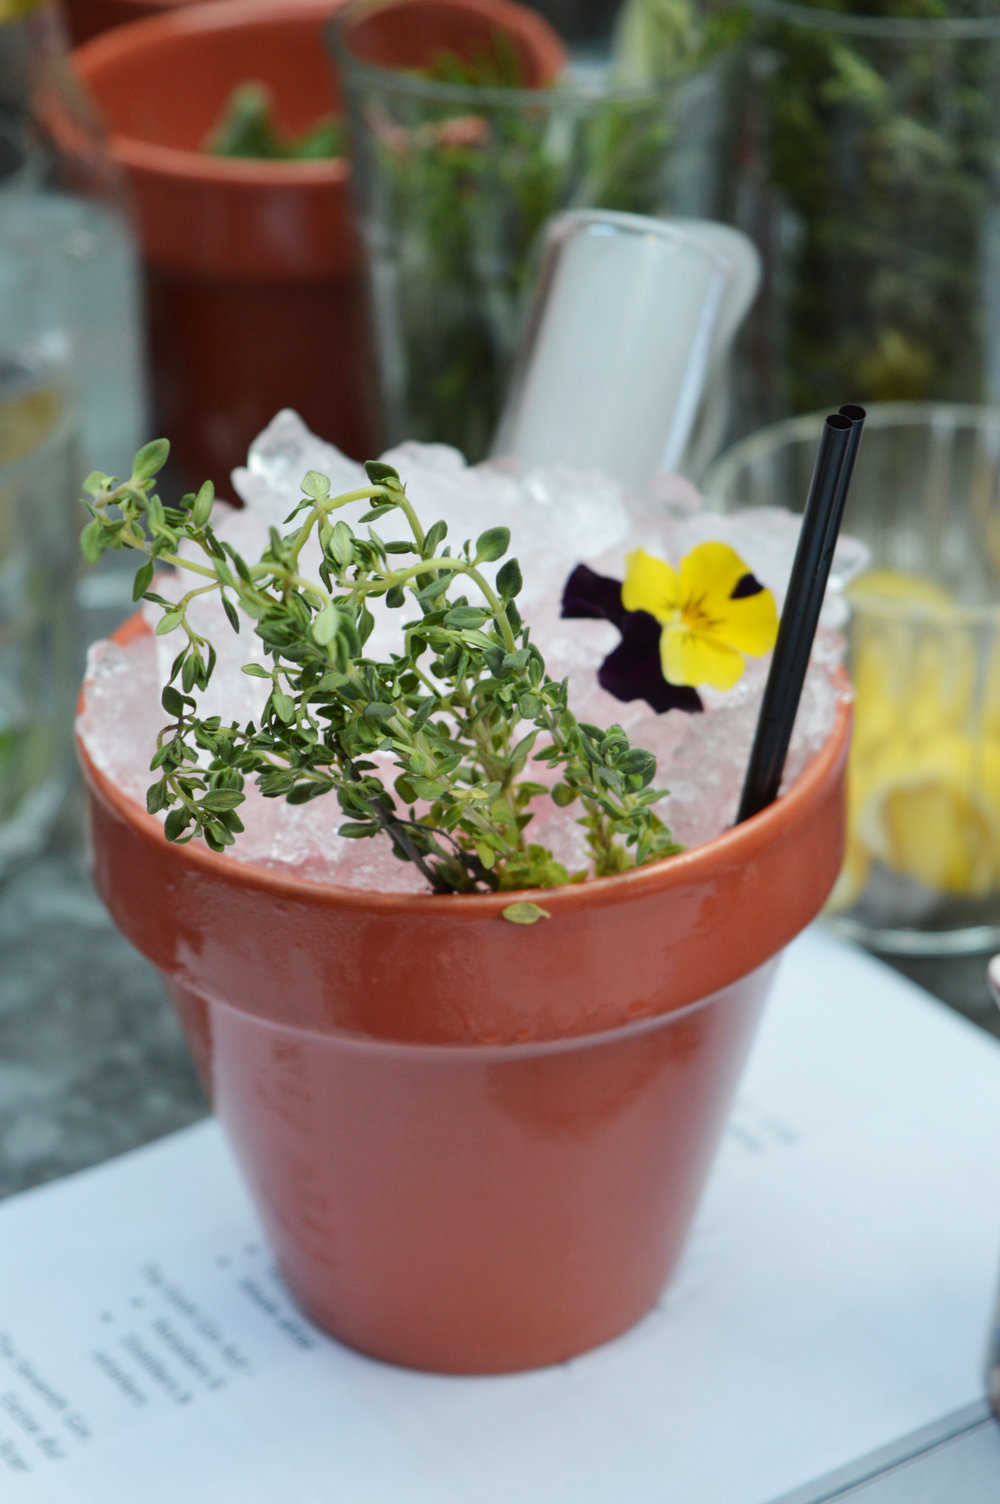 Cocktails in Flowerpots